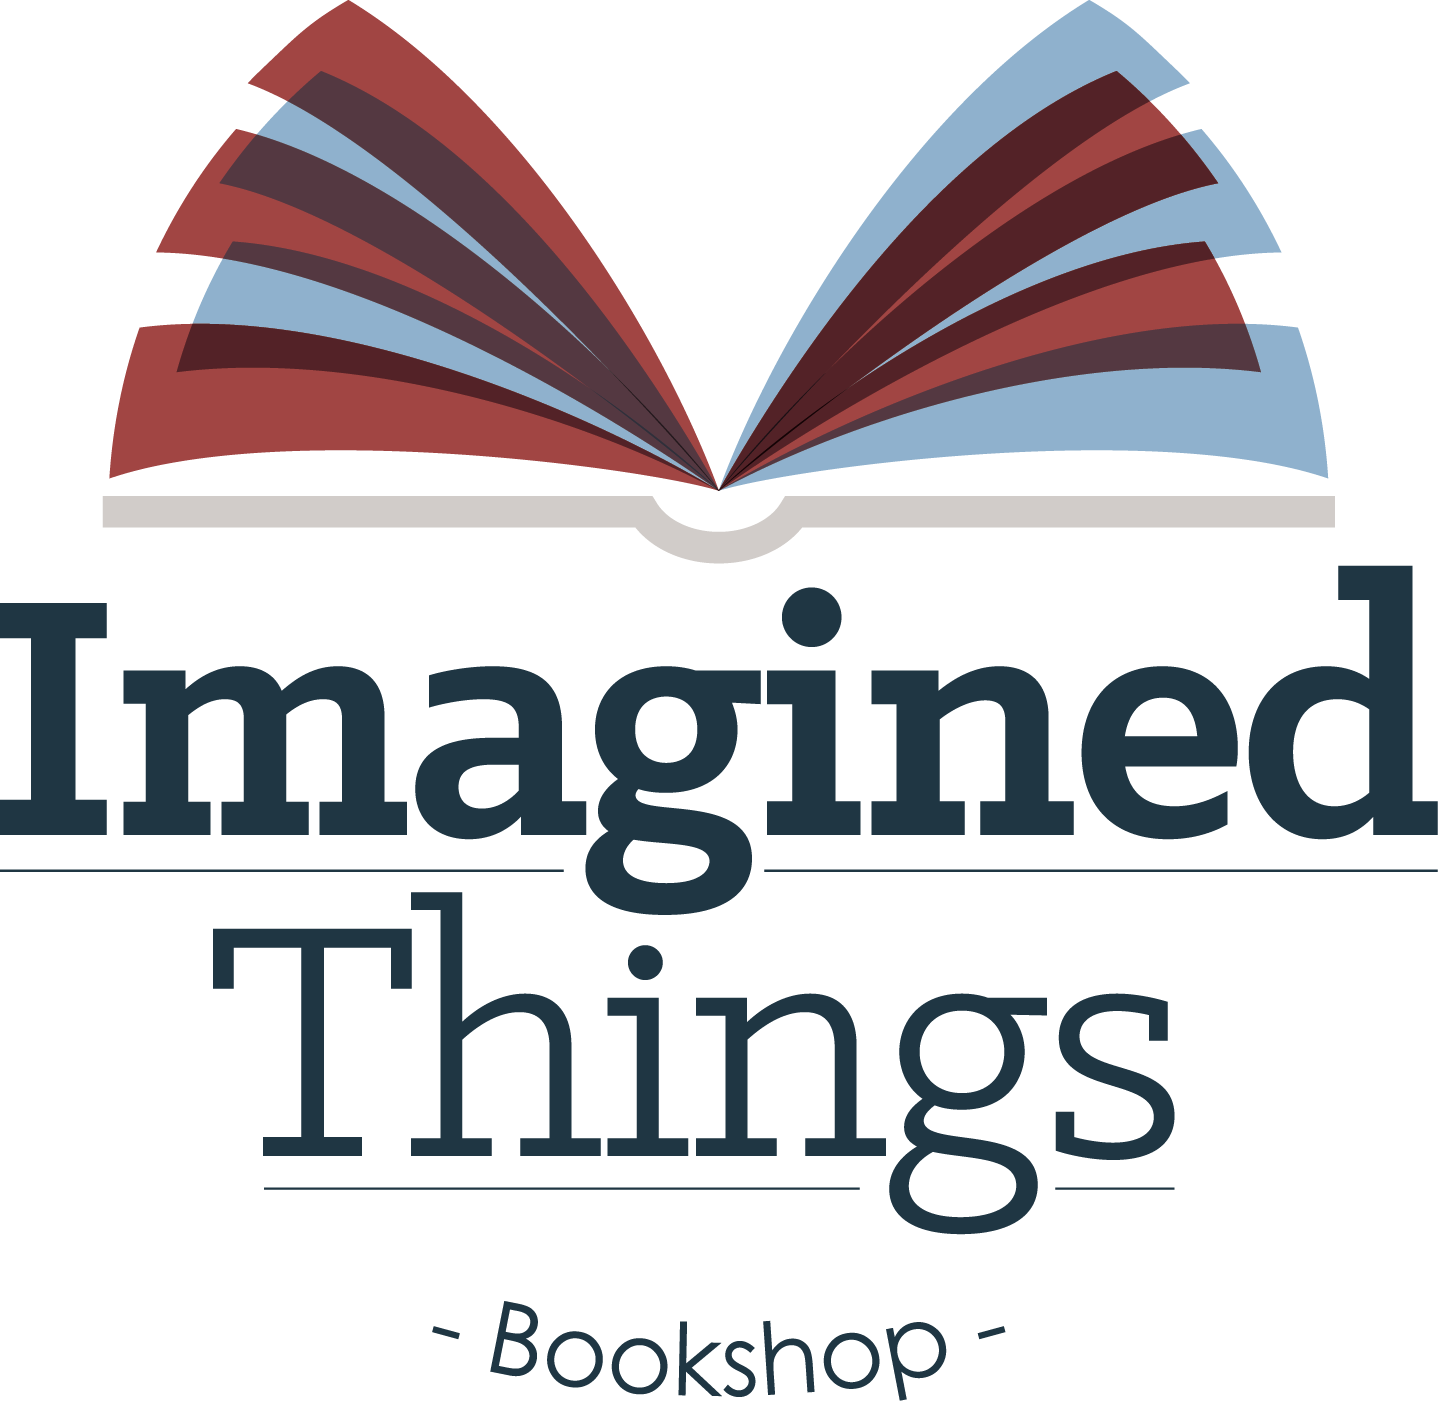 Imagined Things